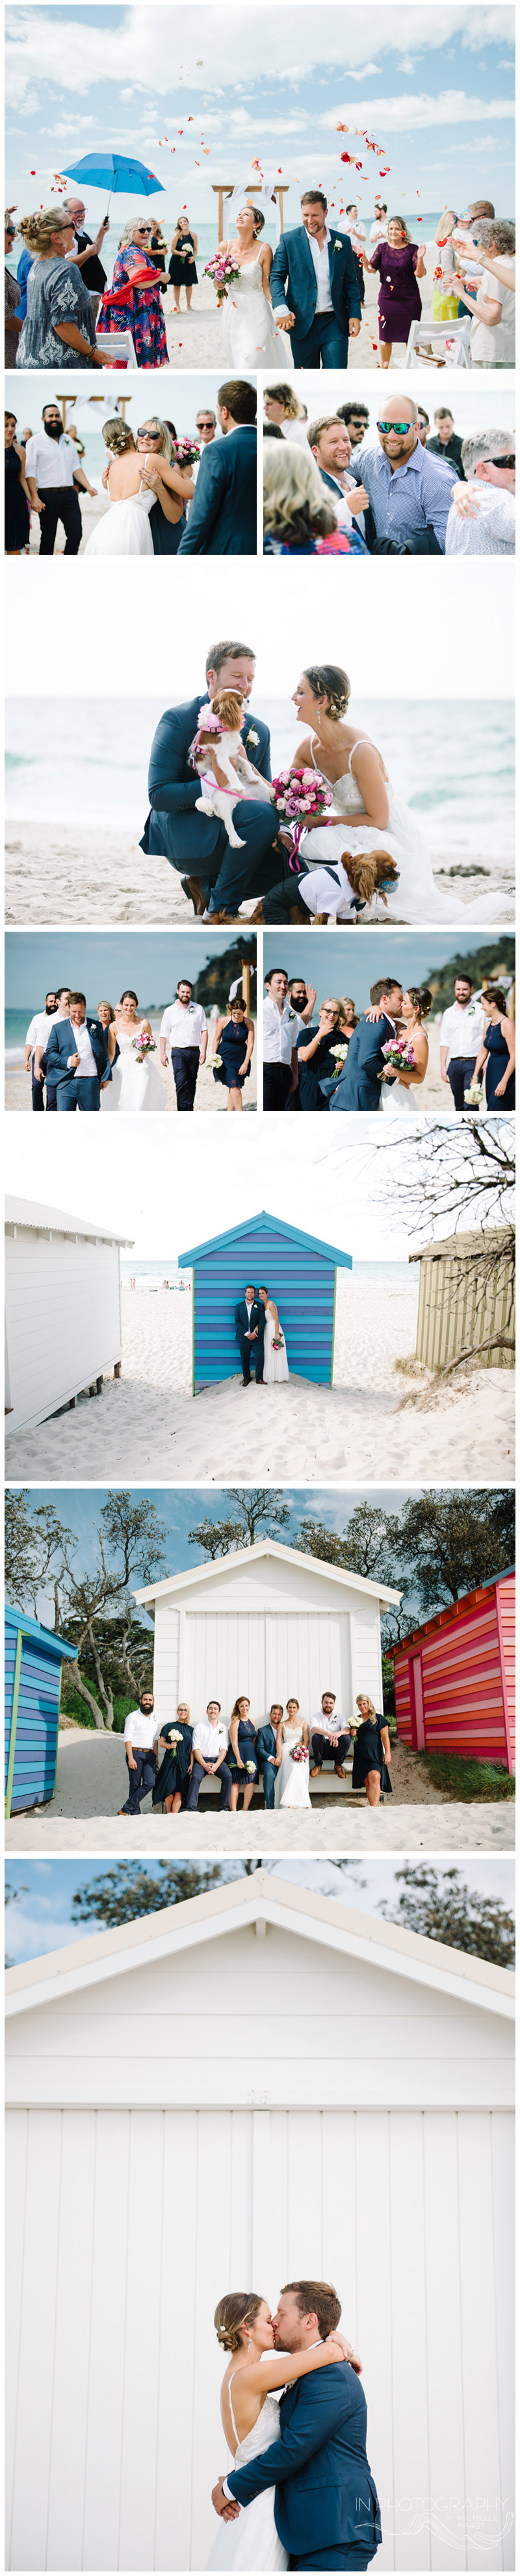 Mornington Peninsula beach wedding photography by Michelle Pragt